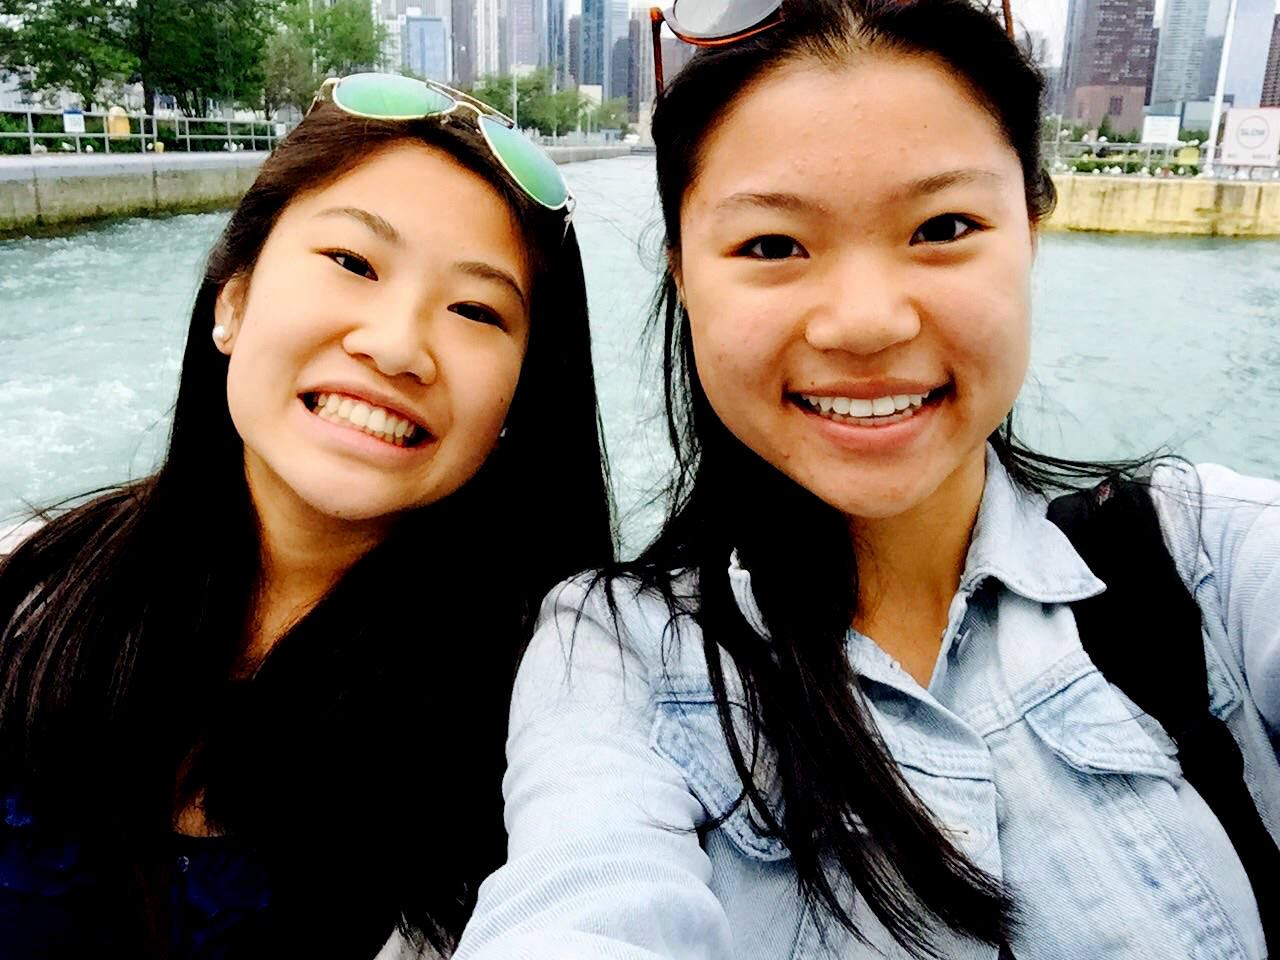 Caroline Gao (left) and Jennifer Chen (right) paused in the middle of sightseeing to take a selfie